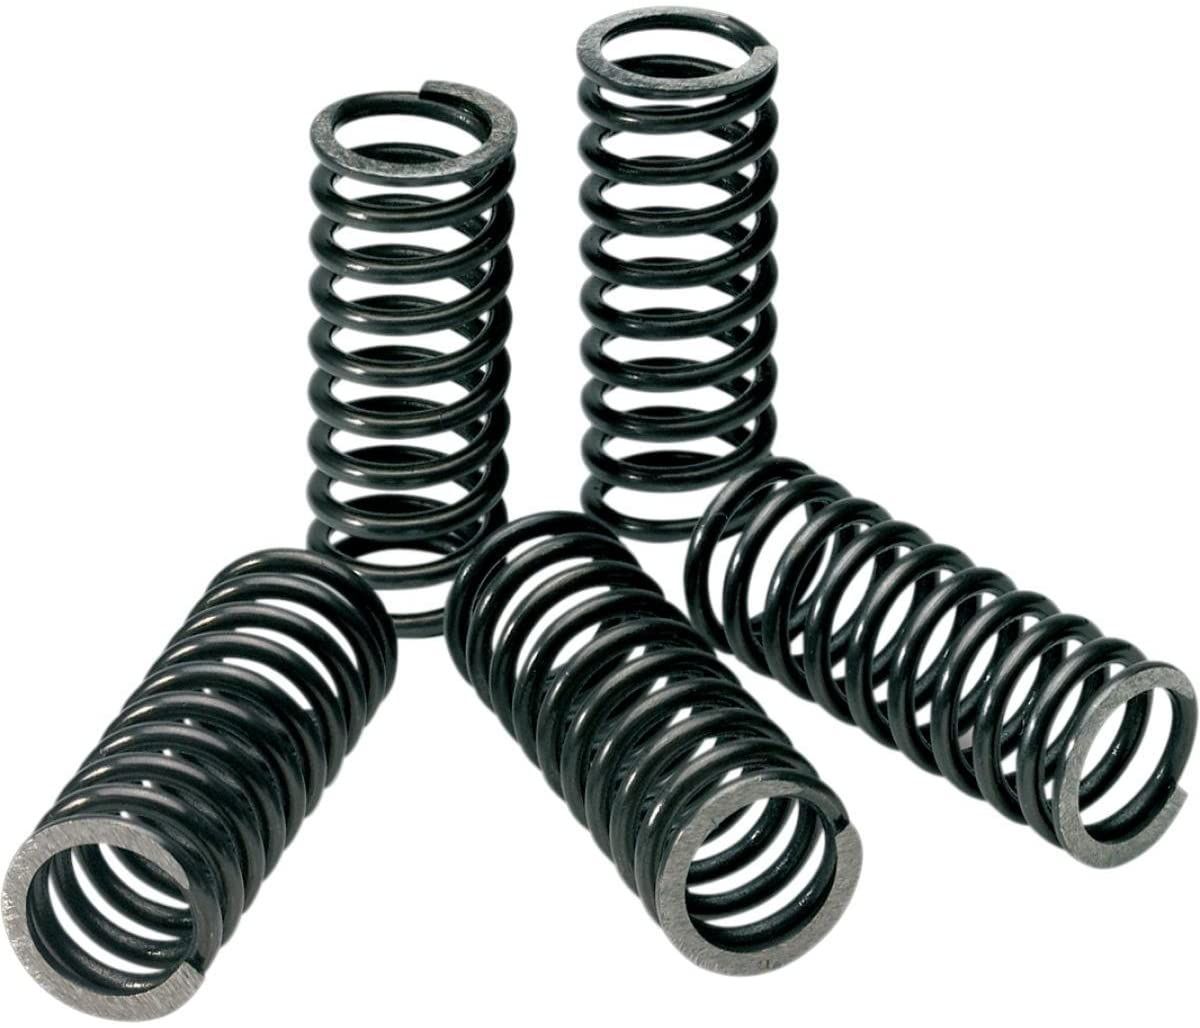 KG Clutch Factory H/P Spring Set for Kawasaki Concours 14 09-10